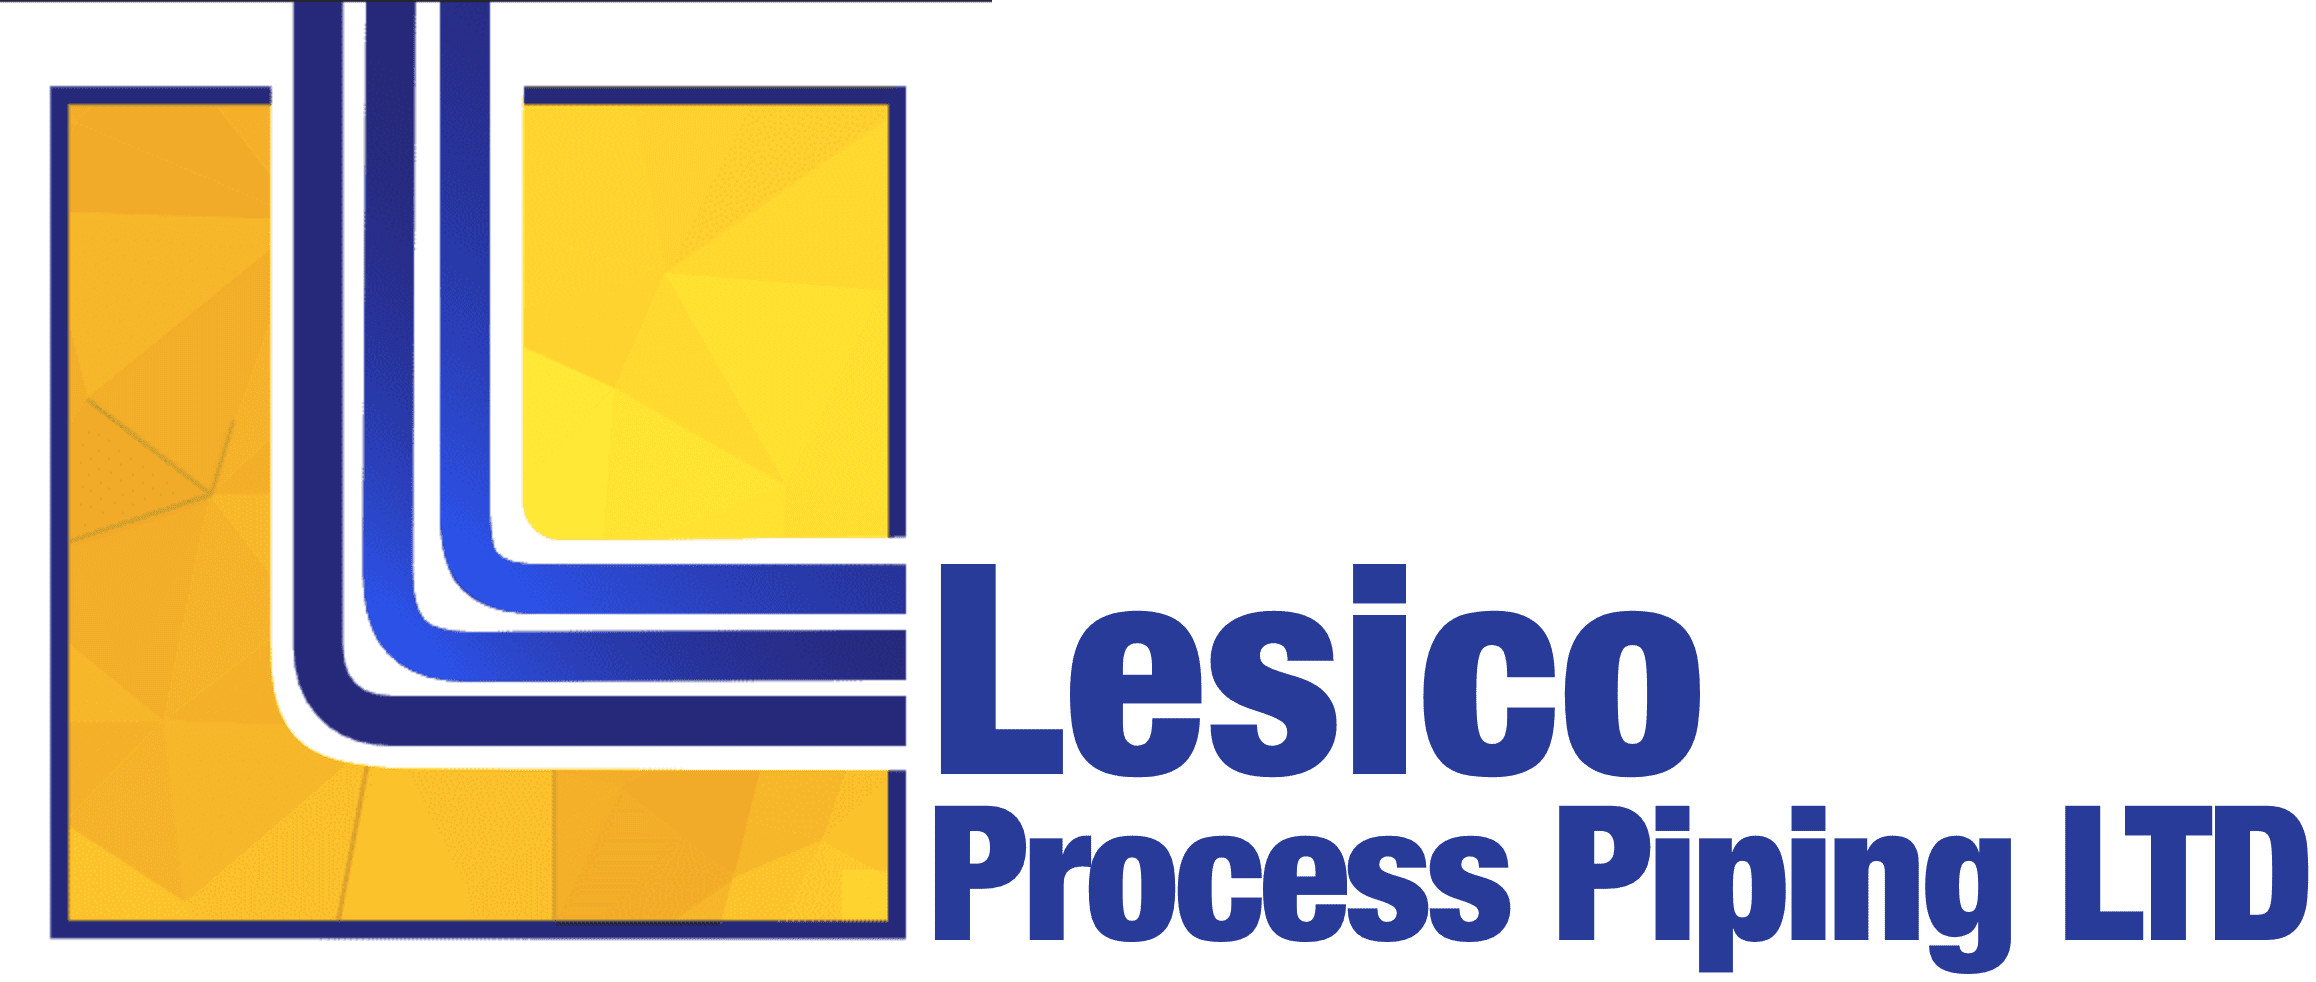 Lesico Process Piping